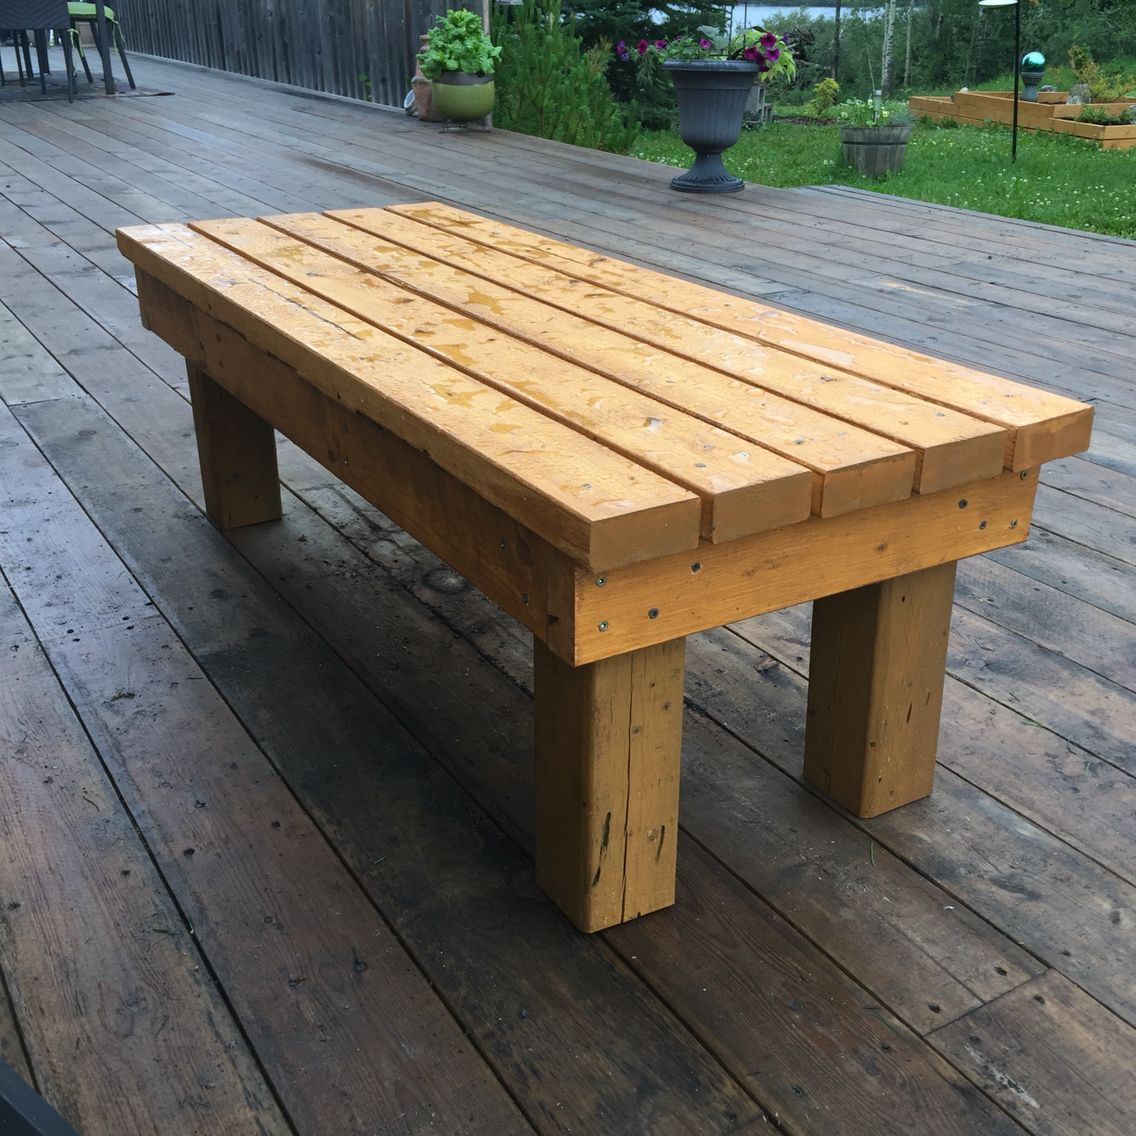 Stupendous July 16 My First Easy Diy Bench 2X4S And A 4X4 Post I Pdpeps Interior Chair Design Pdpepsorg